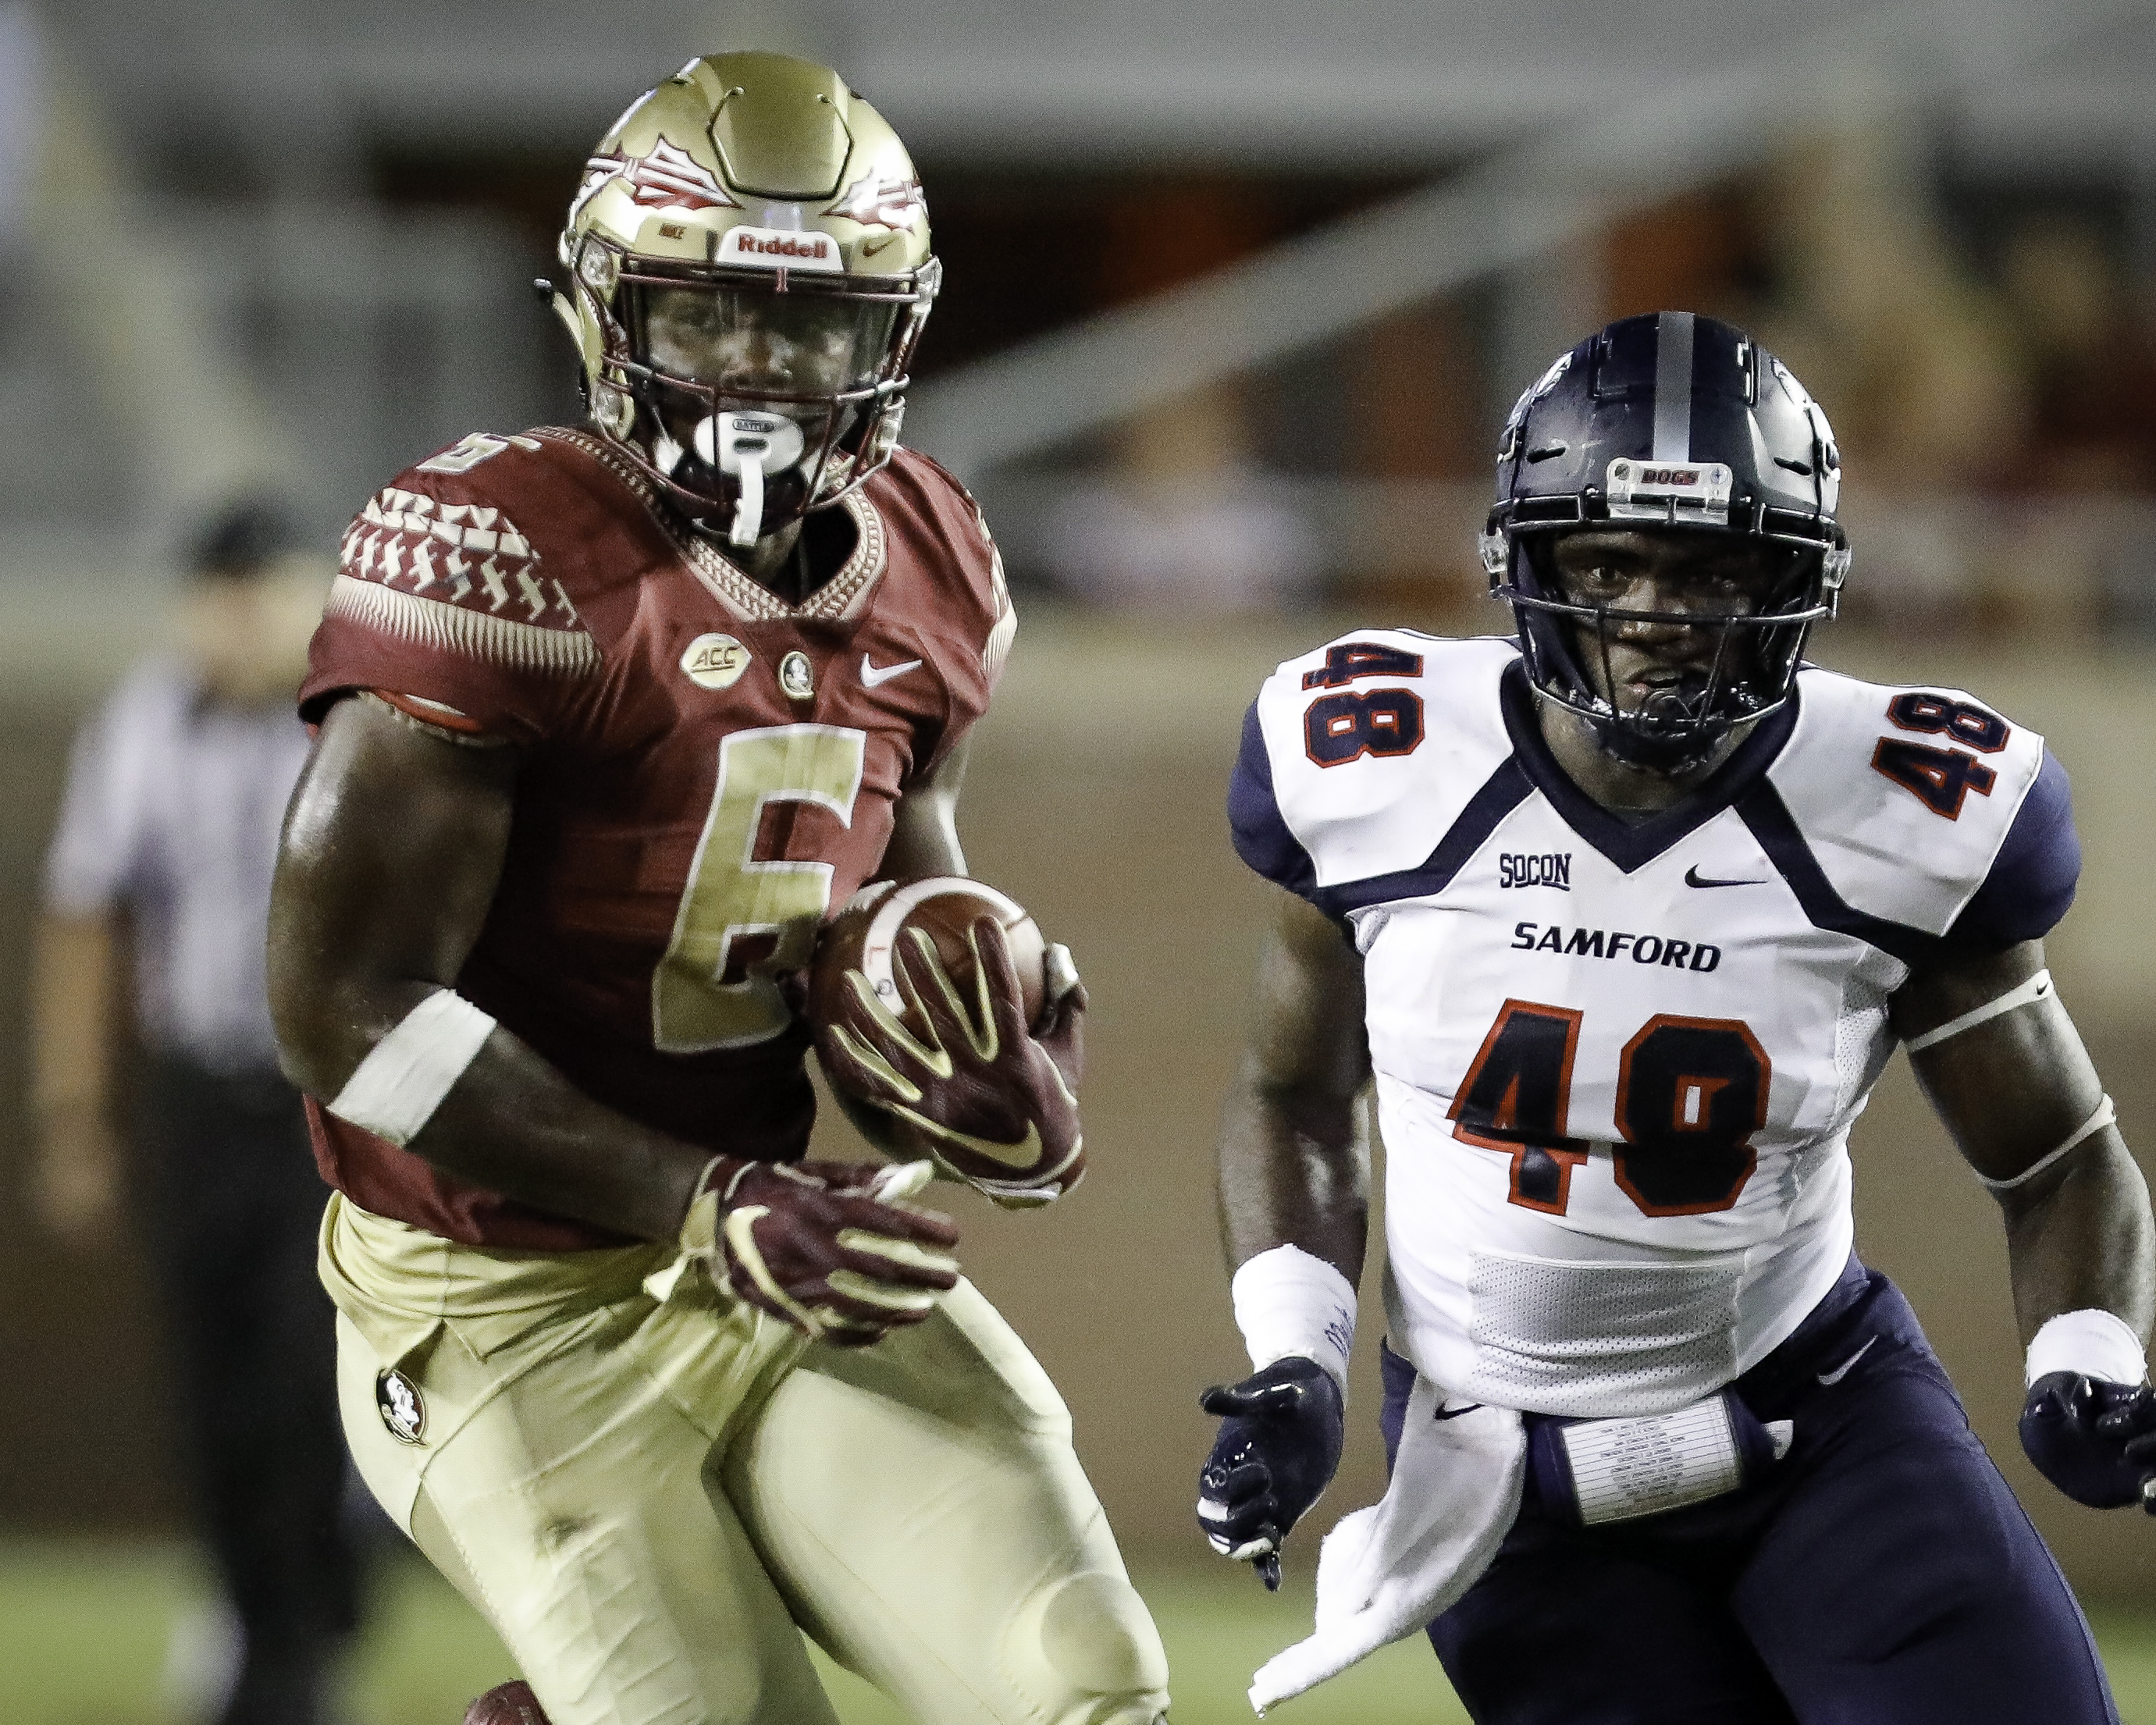 Photo: Tre McKitty (6) versus Samford, September 9, 2018 | Florida State Athletics